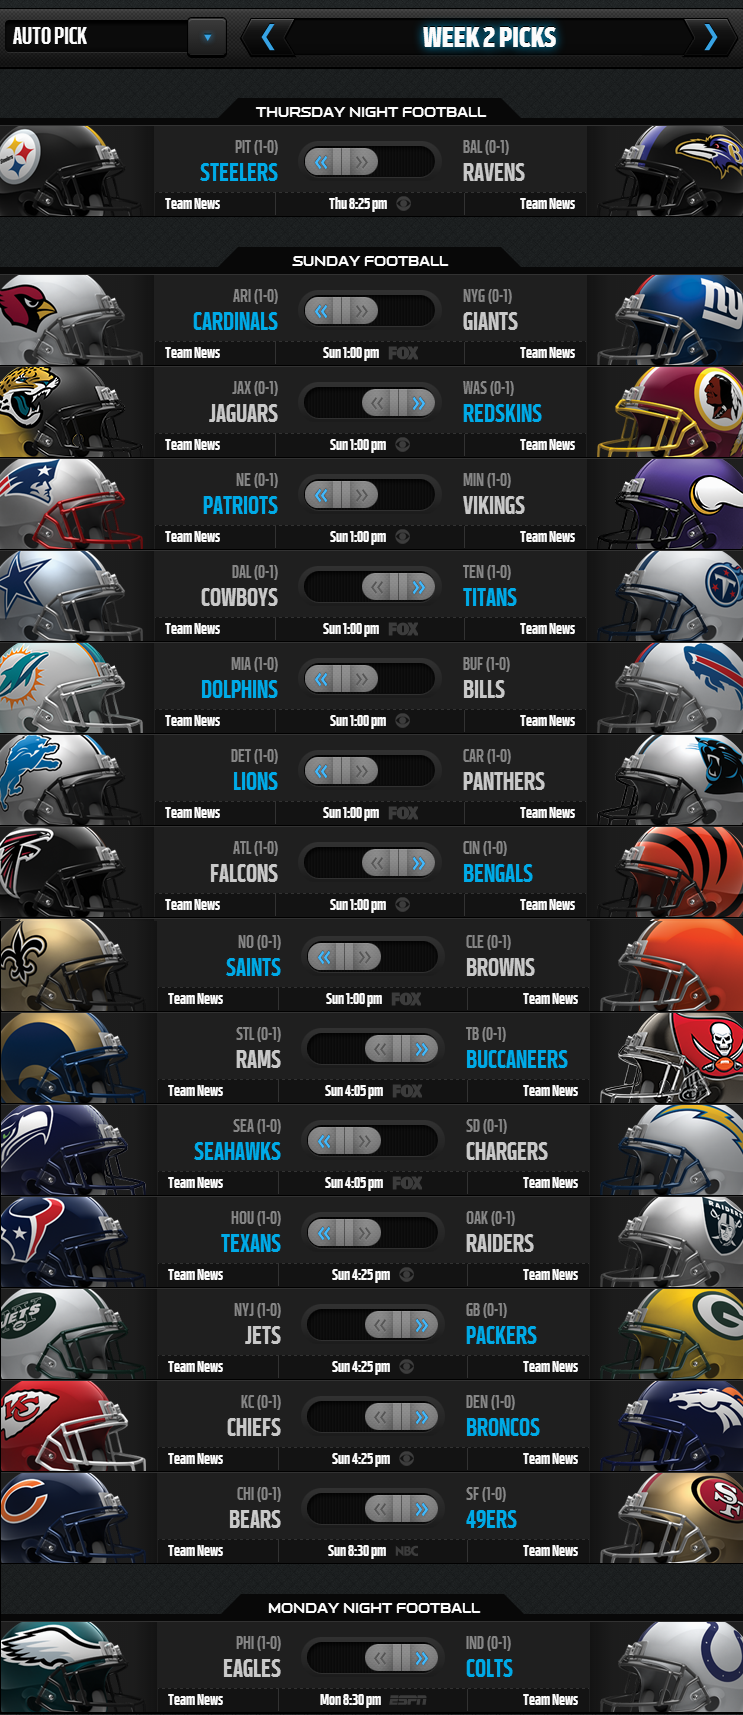 NFL Weekly Picks - Week 2